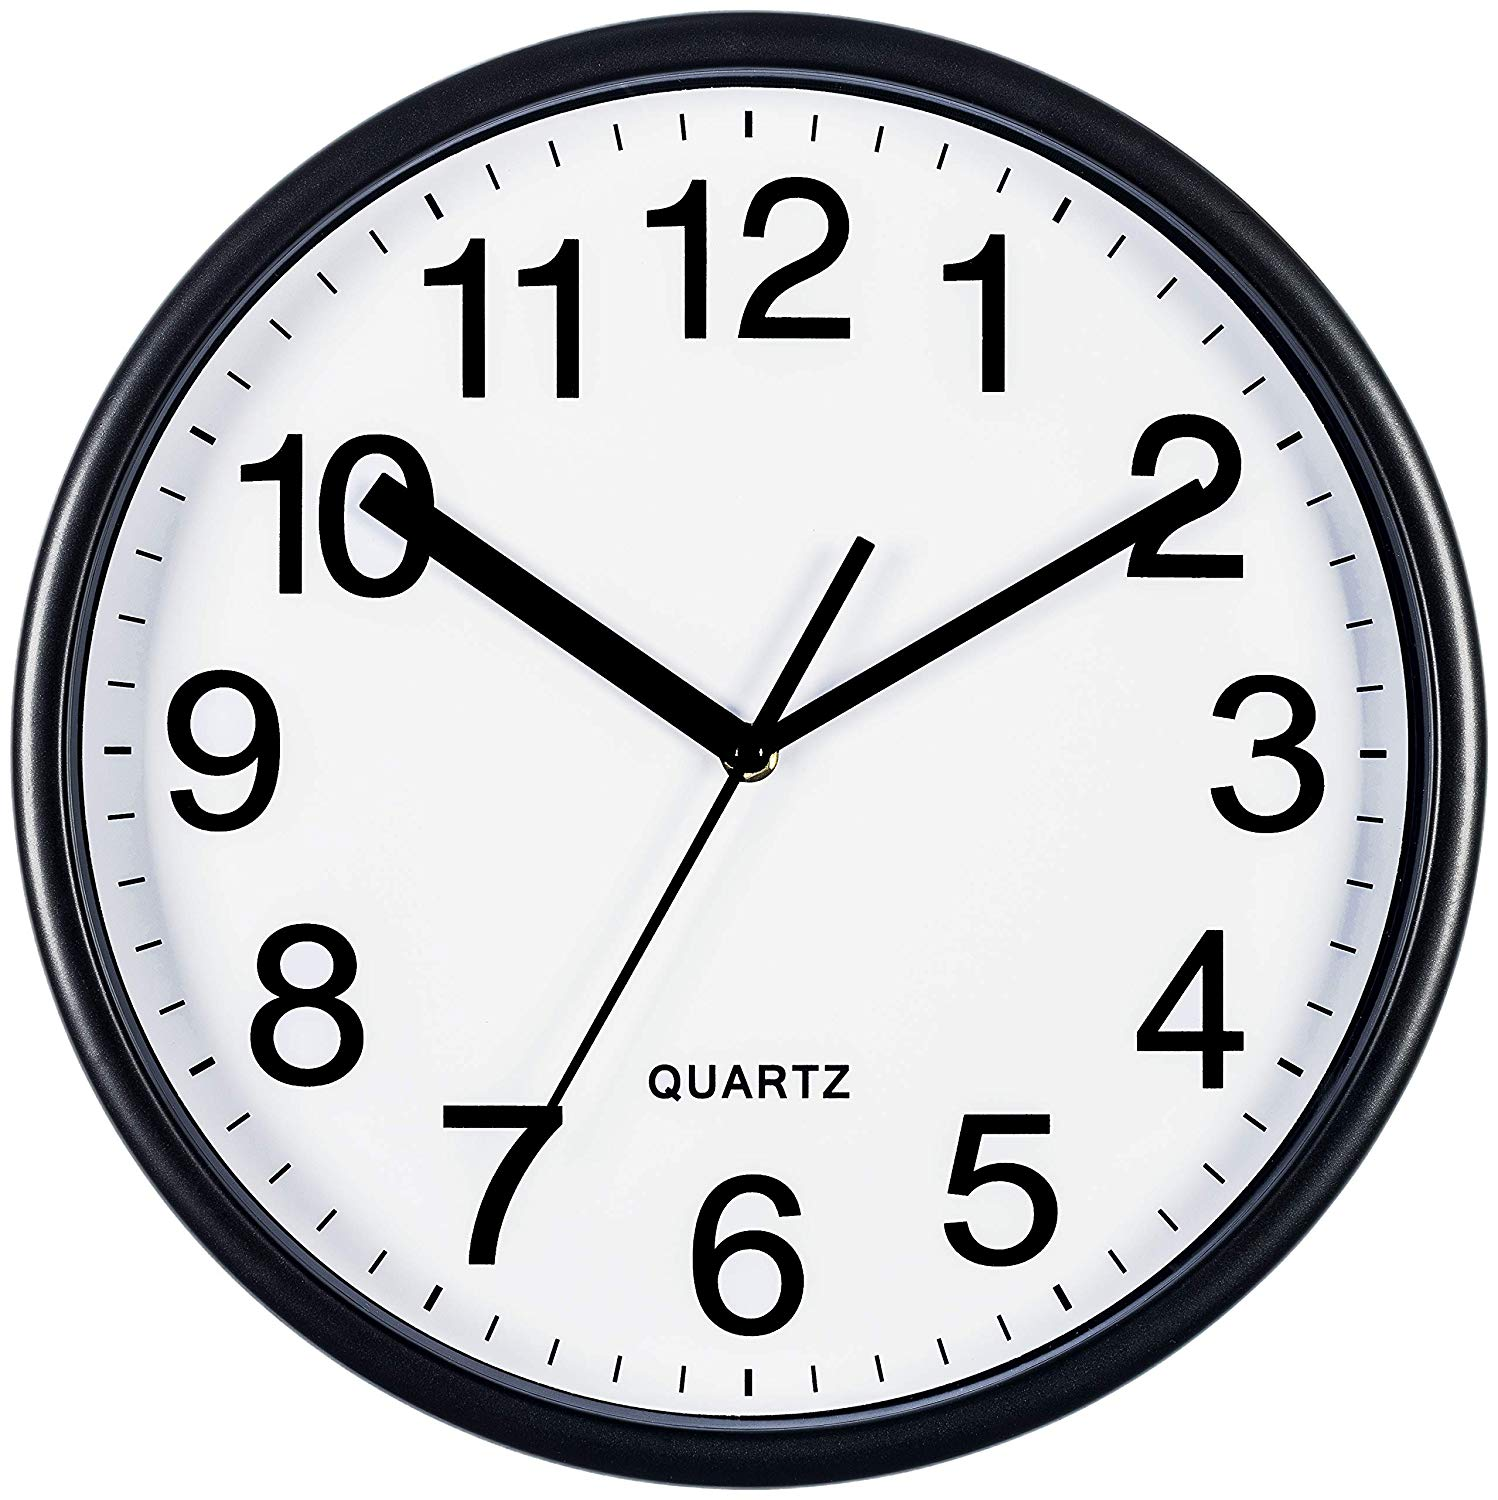 Bernhard Products Large Black Wall Clock, Silent Non Ticking.